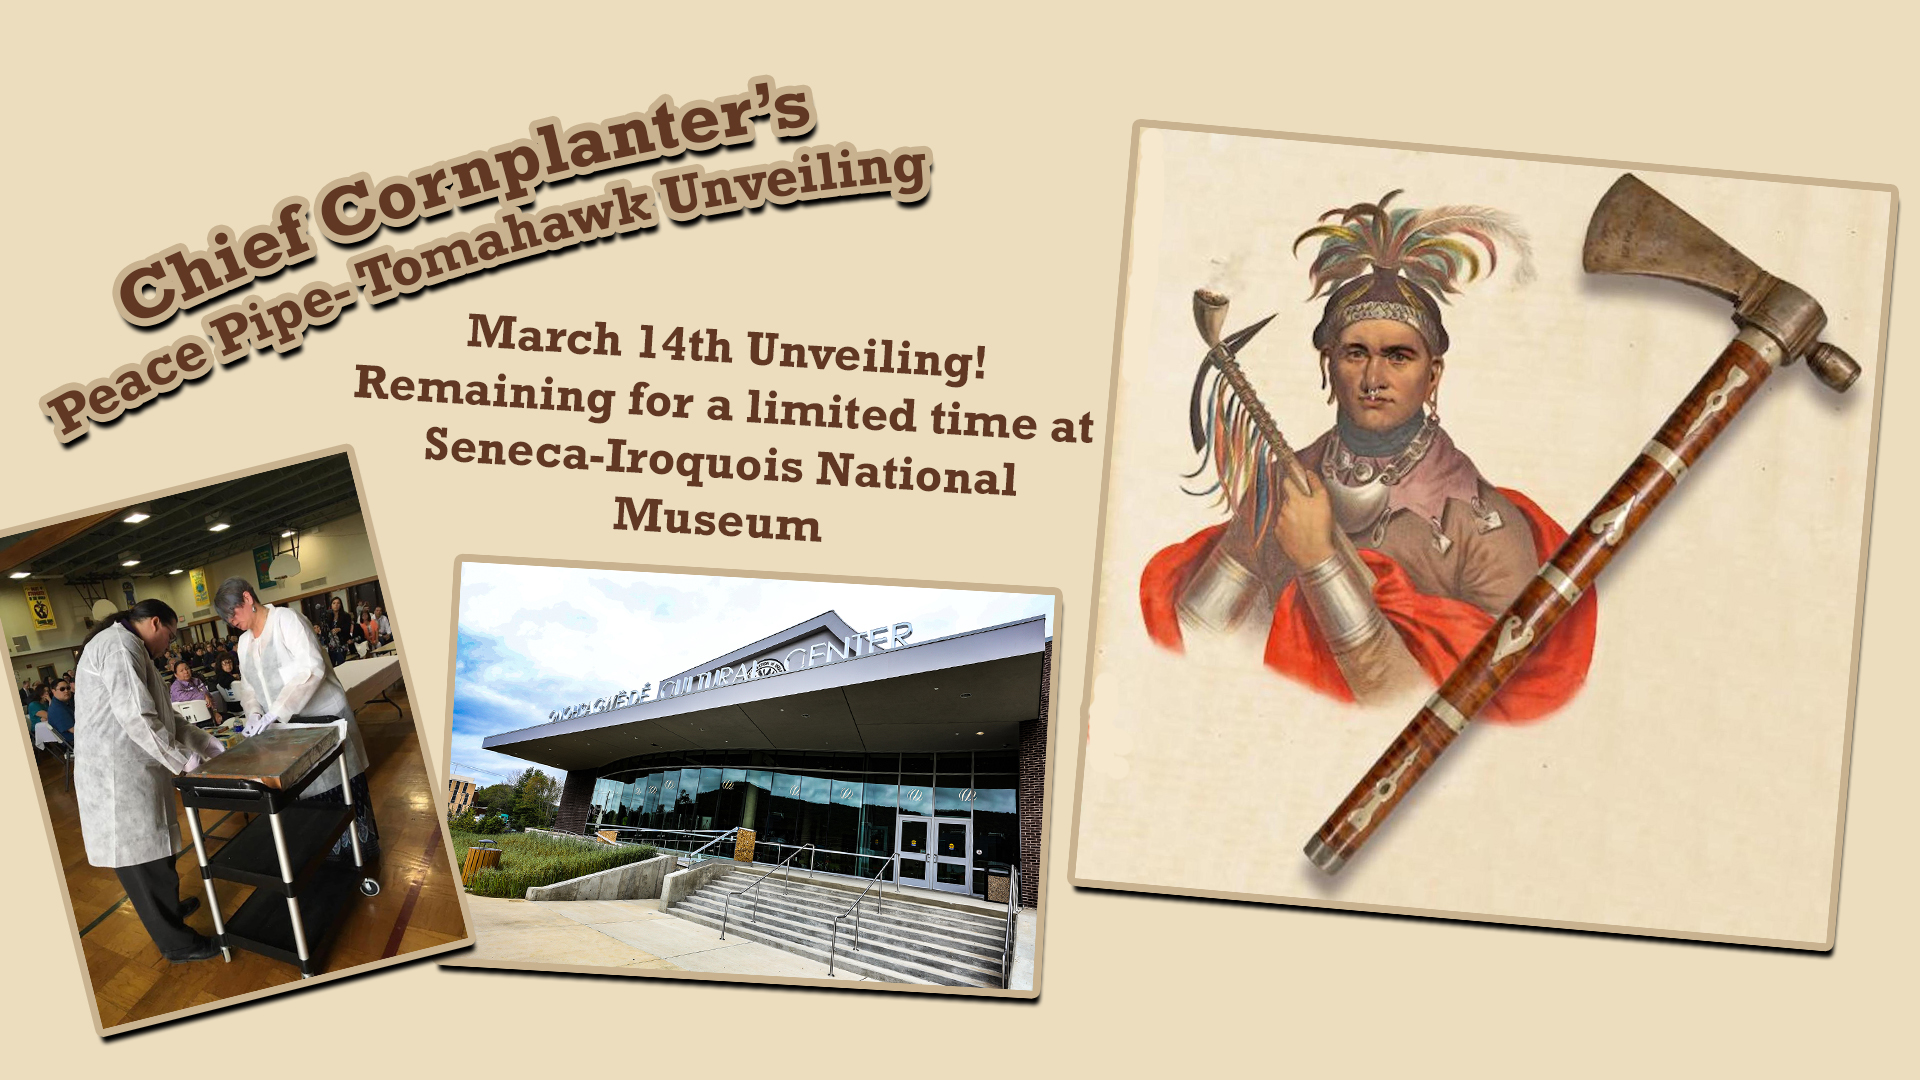 Peace Pipe-Tomahawk unveiling at the Seneca-Iroquois National Musem